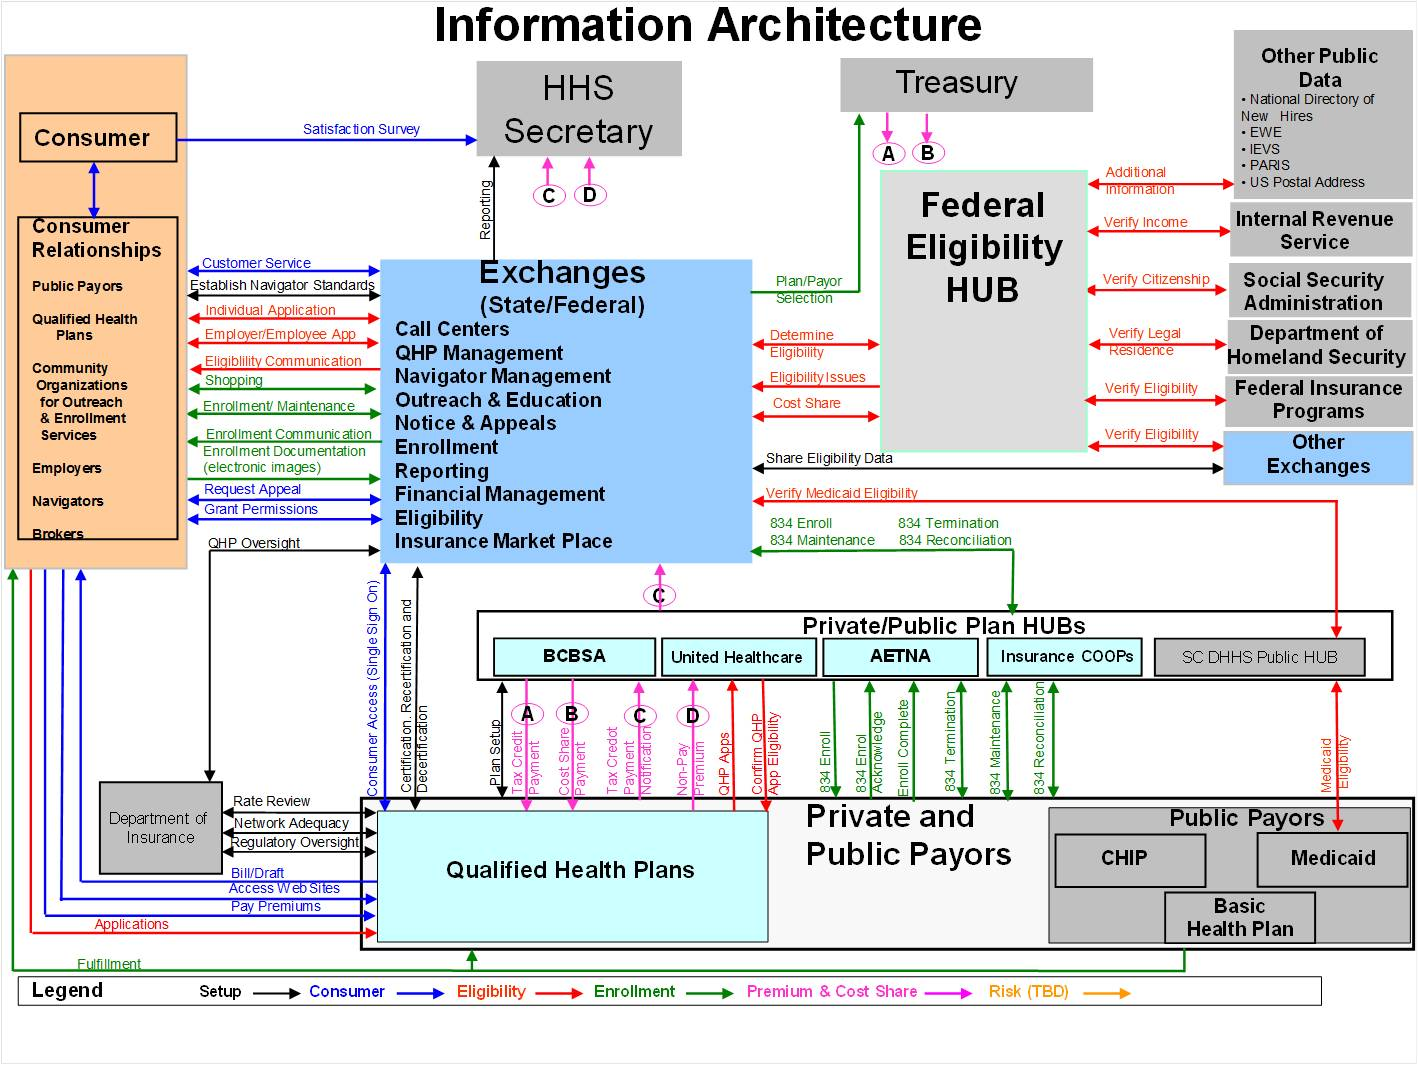 Health care reform defined drobacslideofinformationarchitectureshown11 3 11intulsag ccuart Gallery